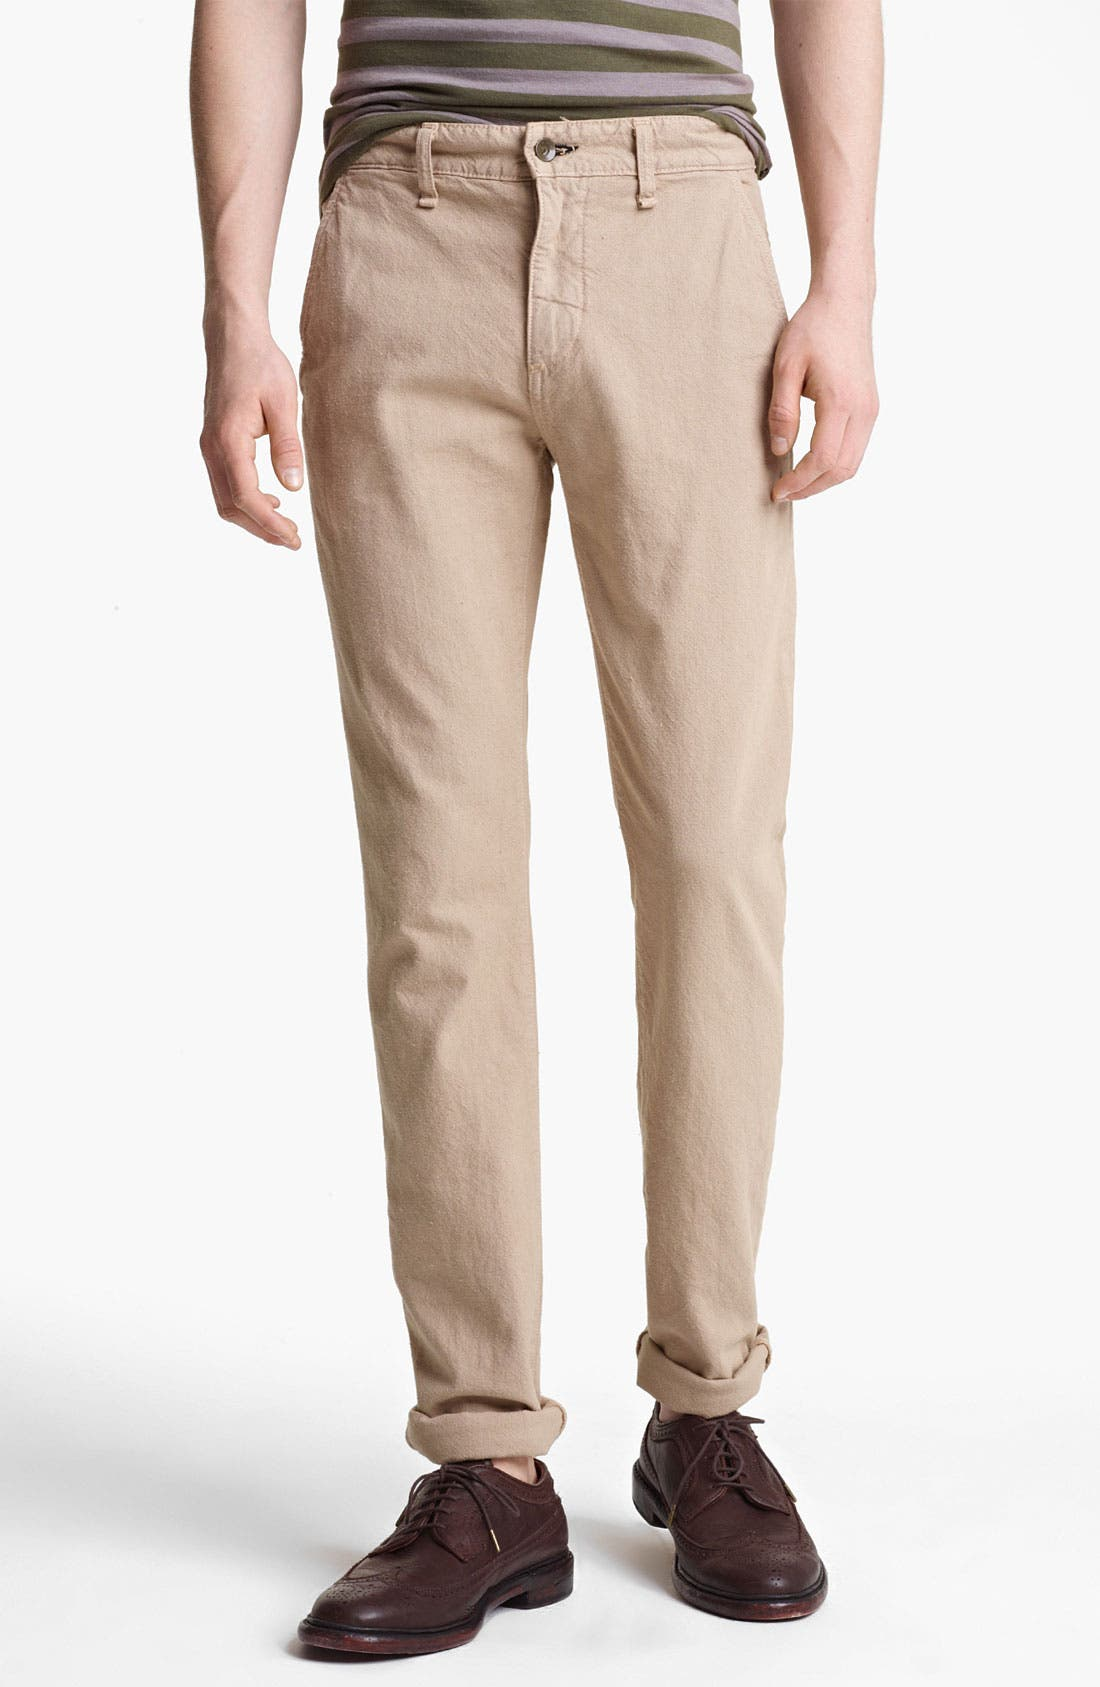 Alternate Image 1 Selected - rag & bone 'RB7' Slim Fit Pants